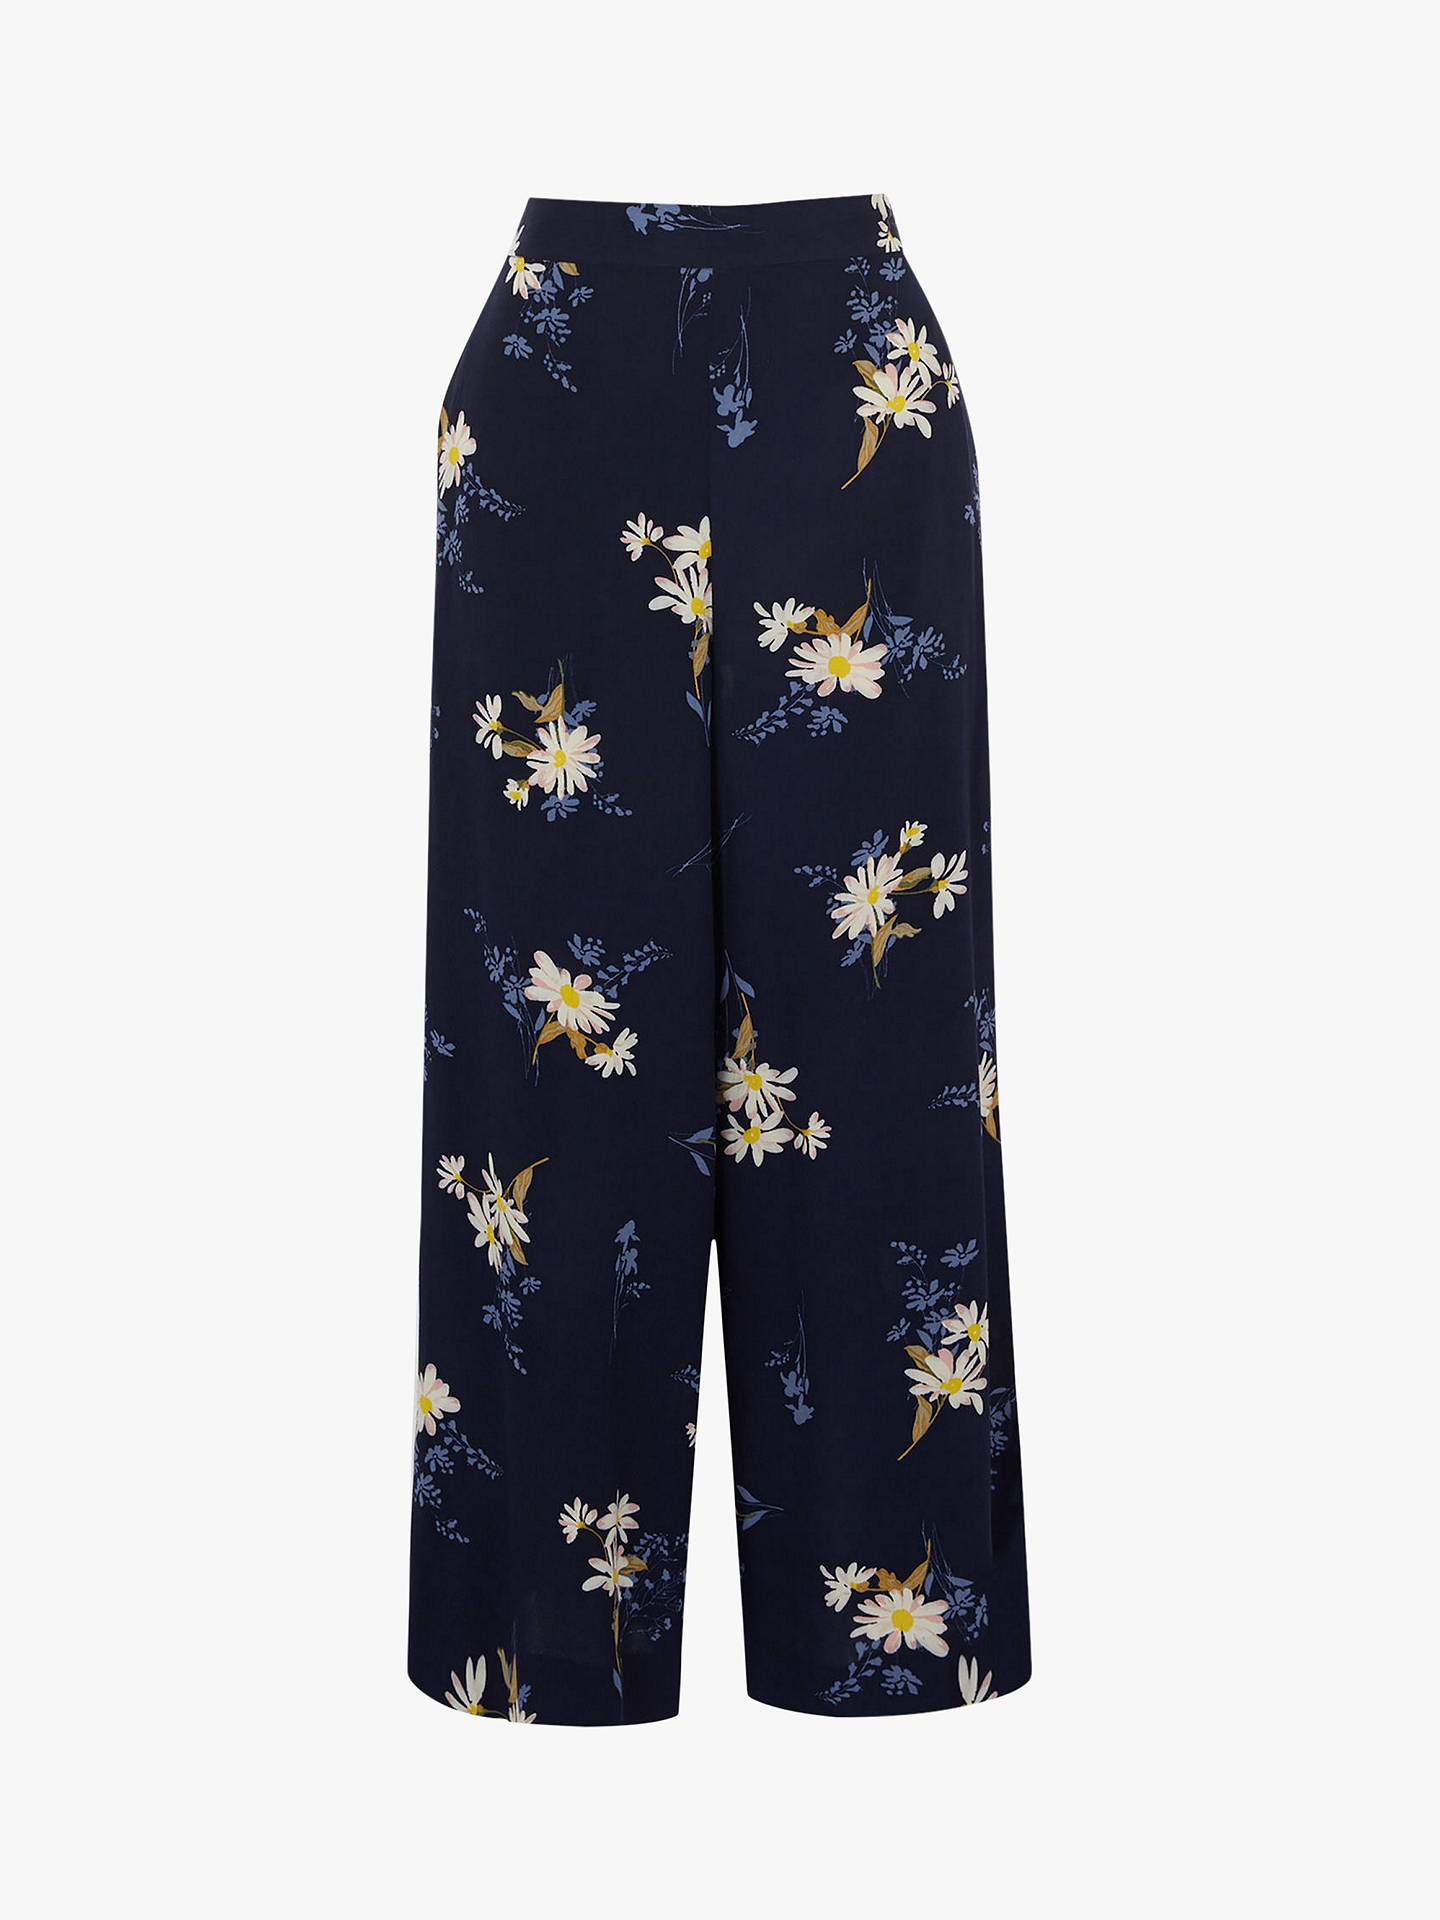 BuyWarehouse Daisy Culottes, Navy, 10 Online at johnlewis.com